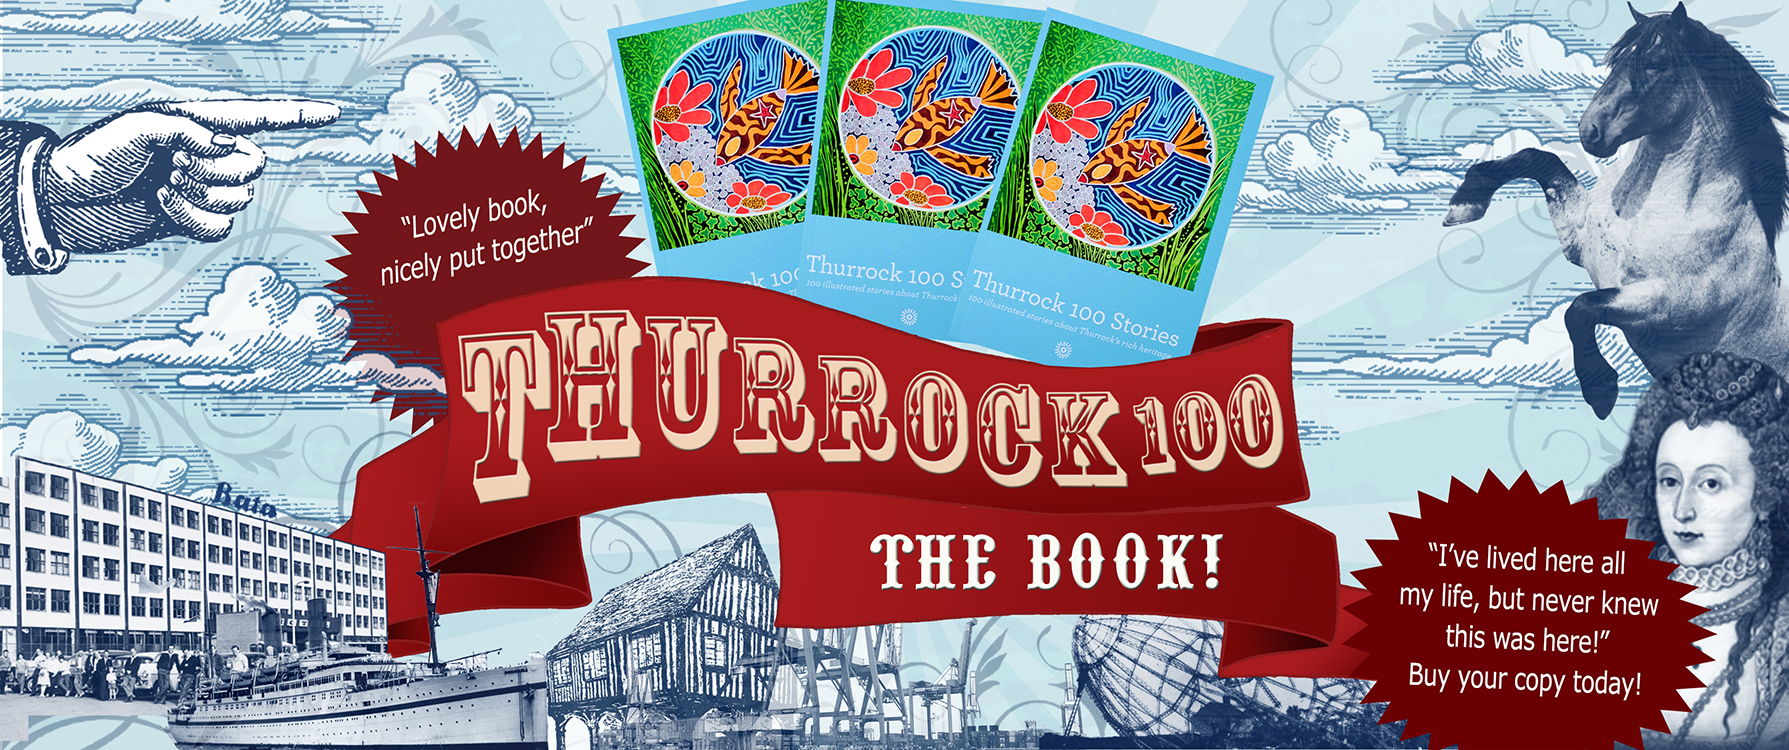 Support Thurrock 100 - buy the story book, only £5+postage